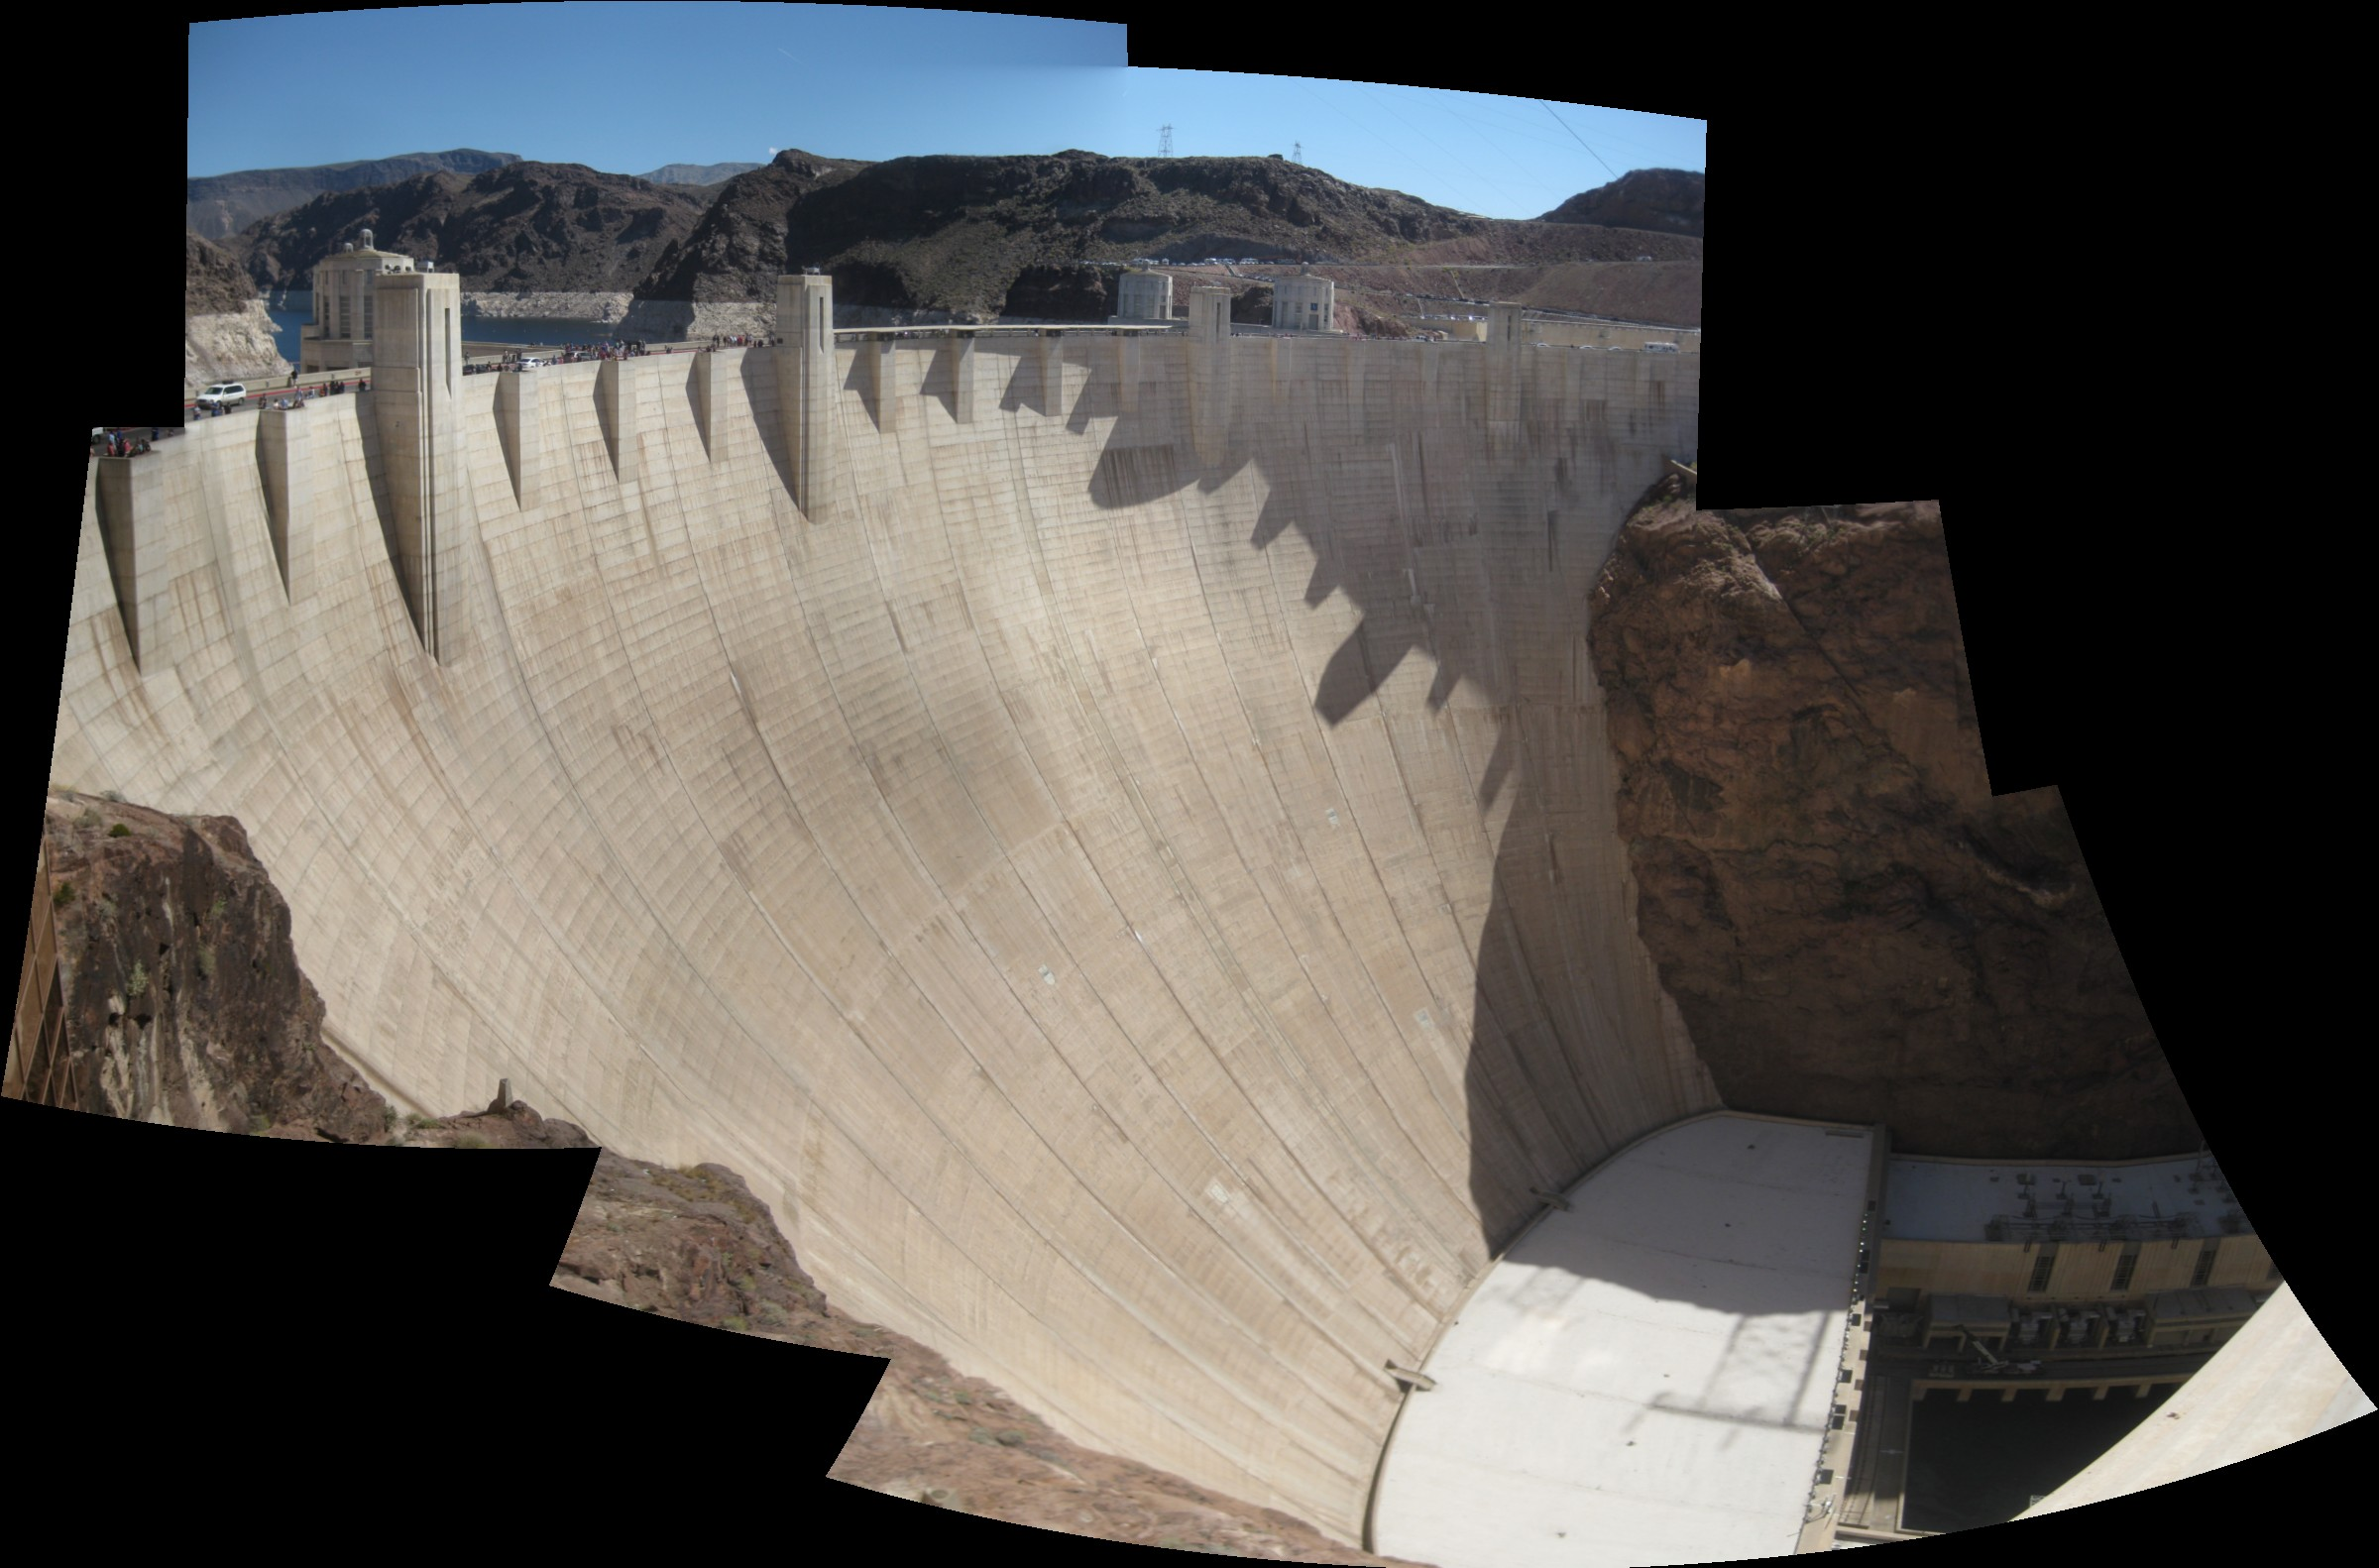 panoramic photo of the Hoover Dam, as seen from the overlook on the Nevada side